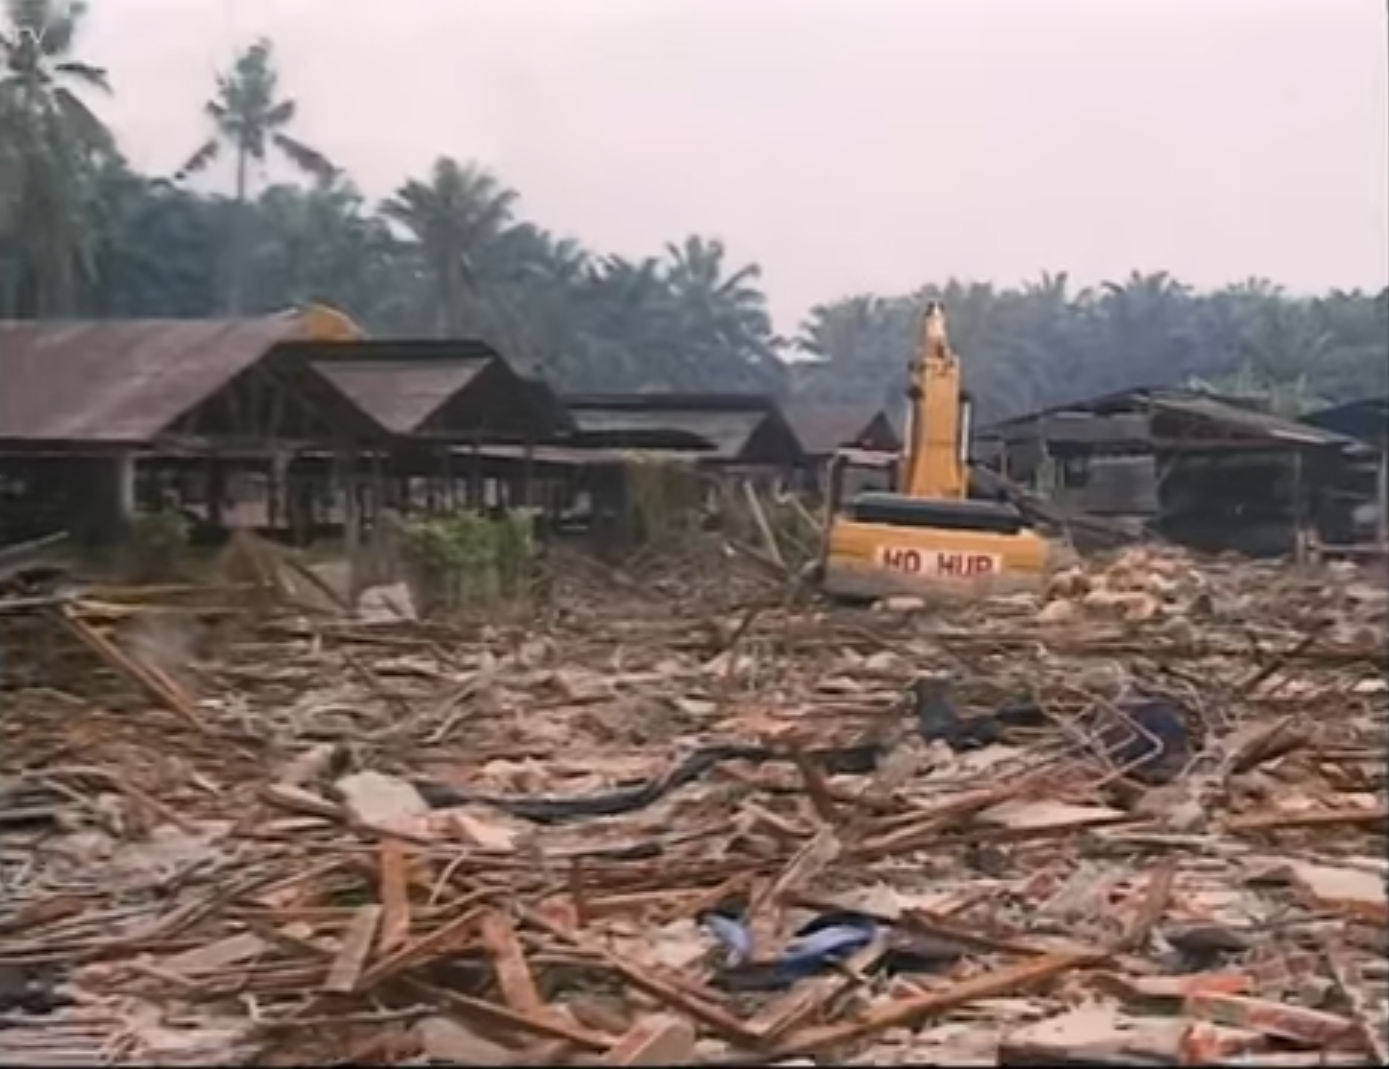 The ruins of Kg Sungai Nipah after the incident. Screengrabbed from the Journeyman Pictures documentary.